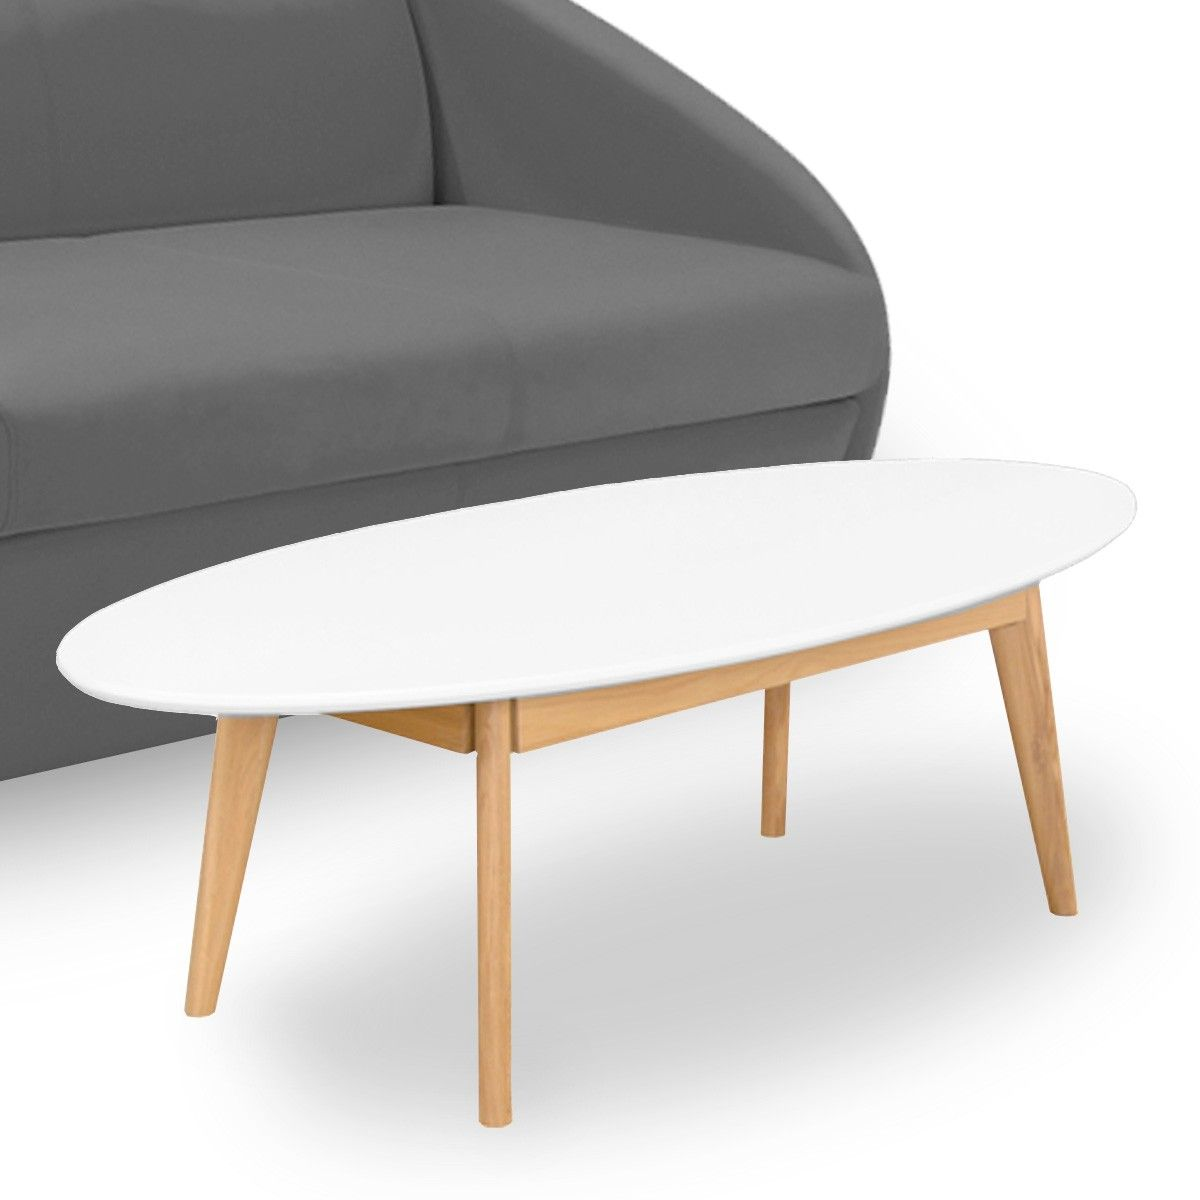 La table basse parfaite pour votre salon rise and shine - Table basse ovale scandinave ...